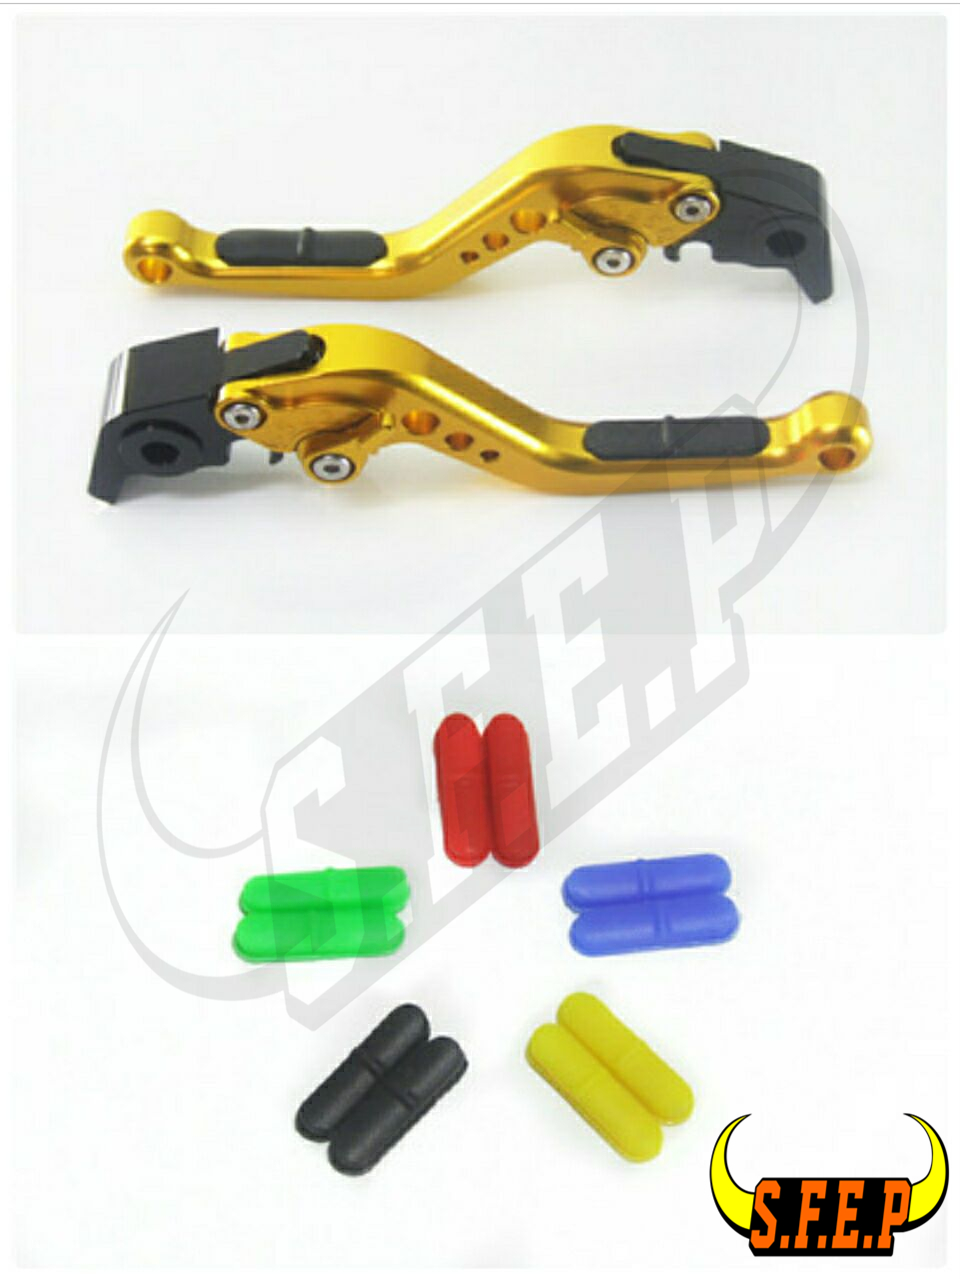 CNC Adjustable Motorcycle Brake and Clutch Levers with Anti-Slip For Triumph SPRINT ST 1997-2003 long straight new cnc adjustable brake clutch levers for triumph speed four speed triple daytona 600 650 955i sprint st rs gt